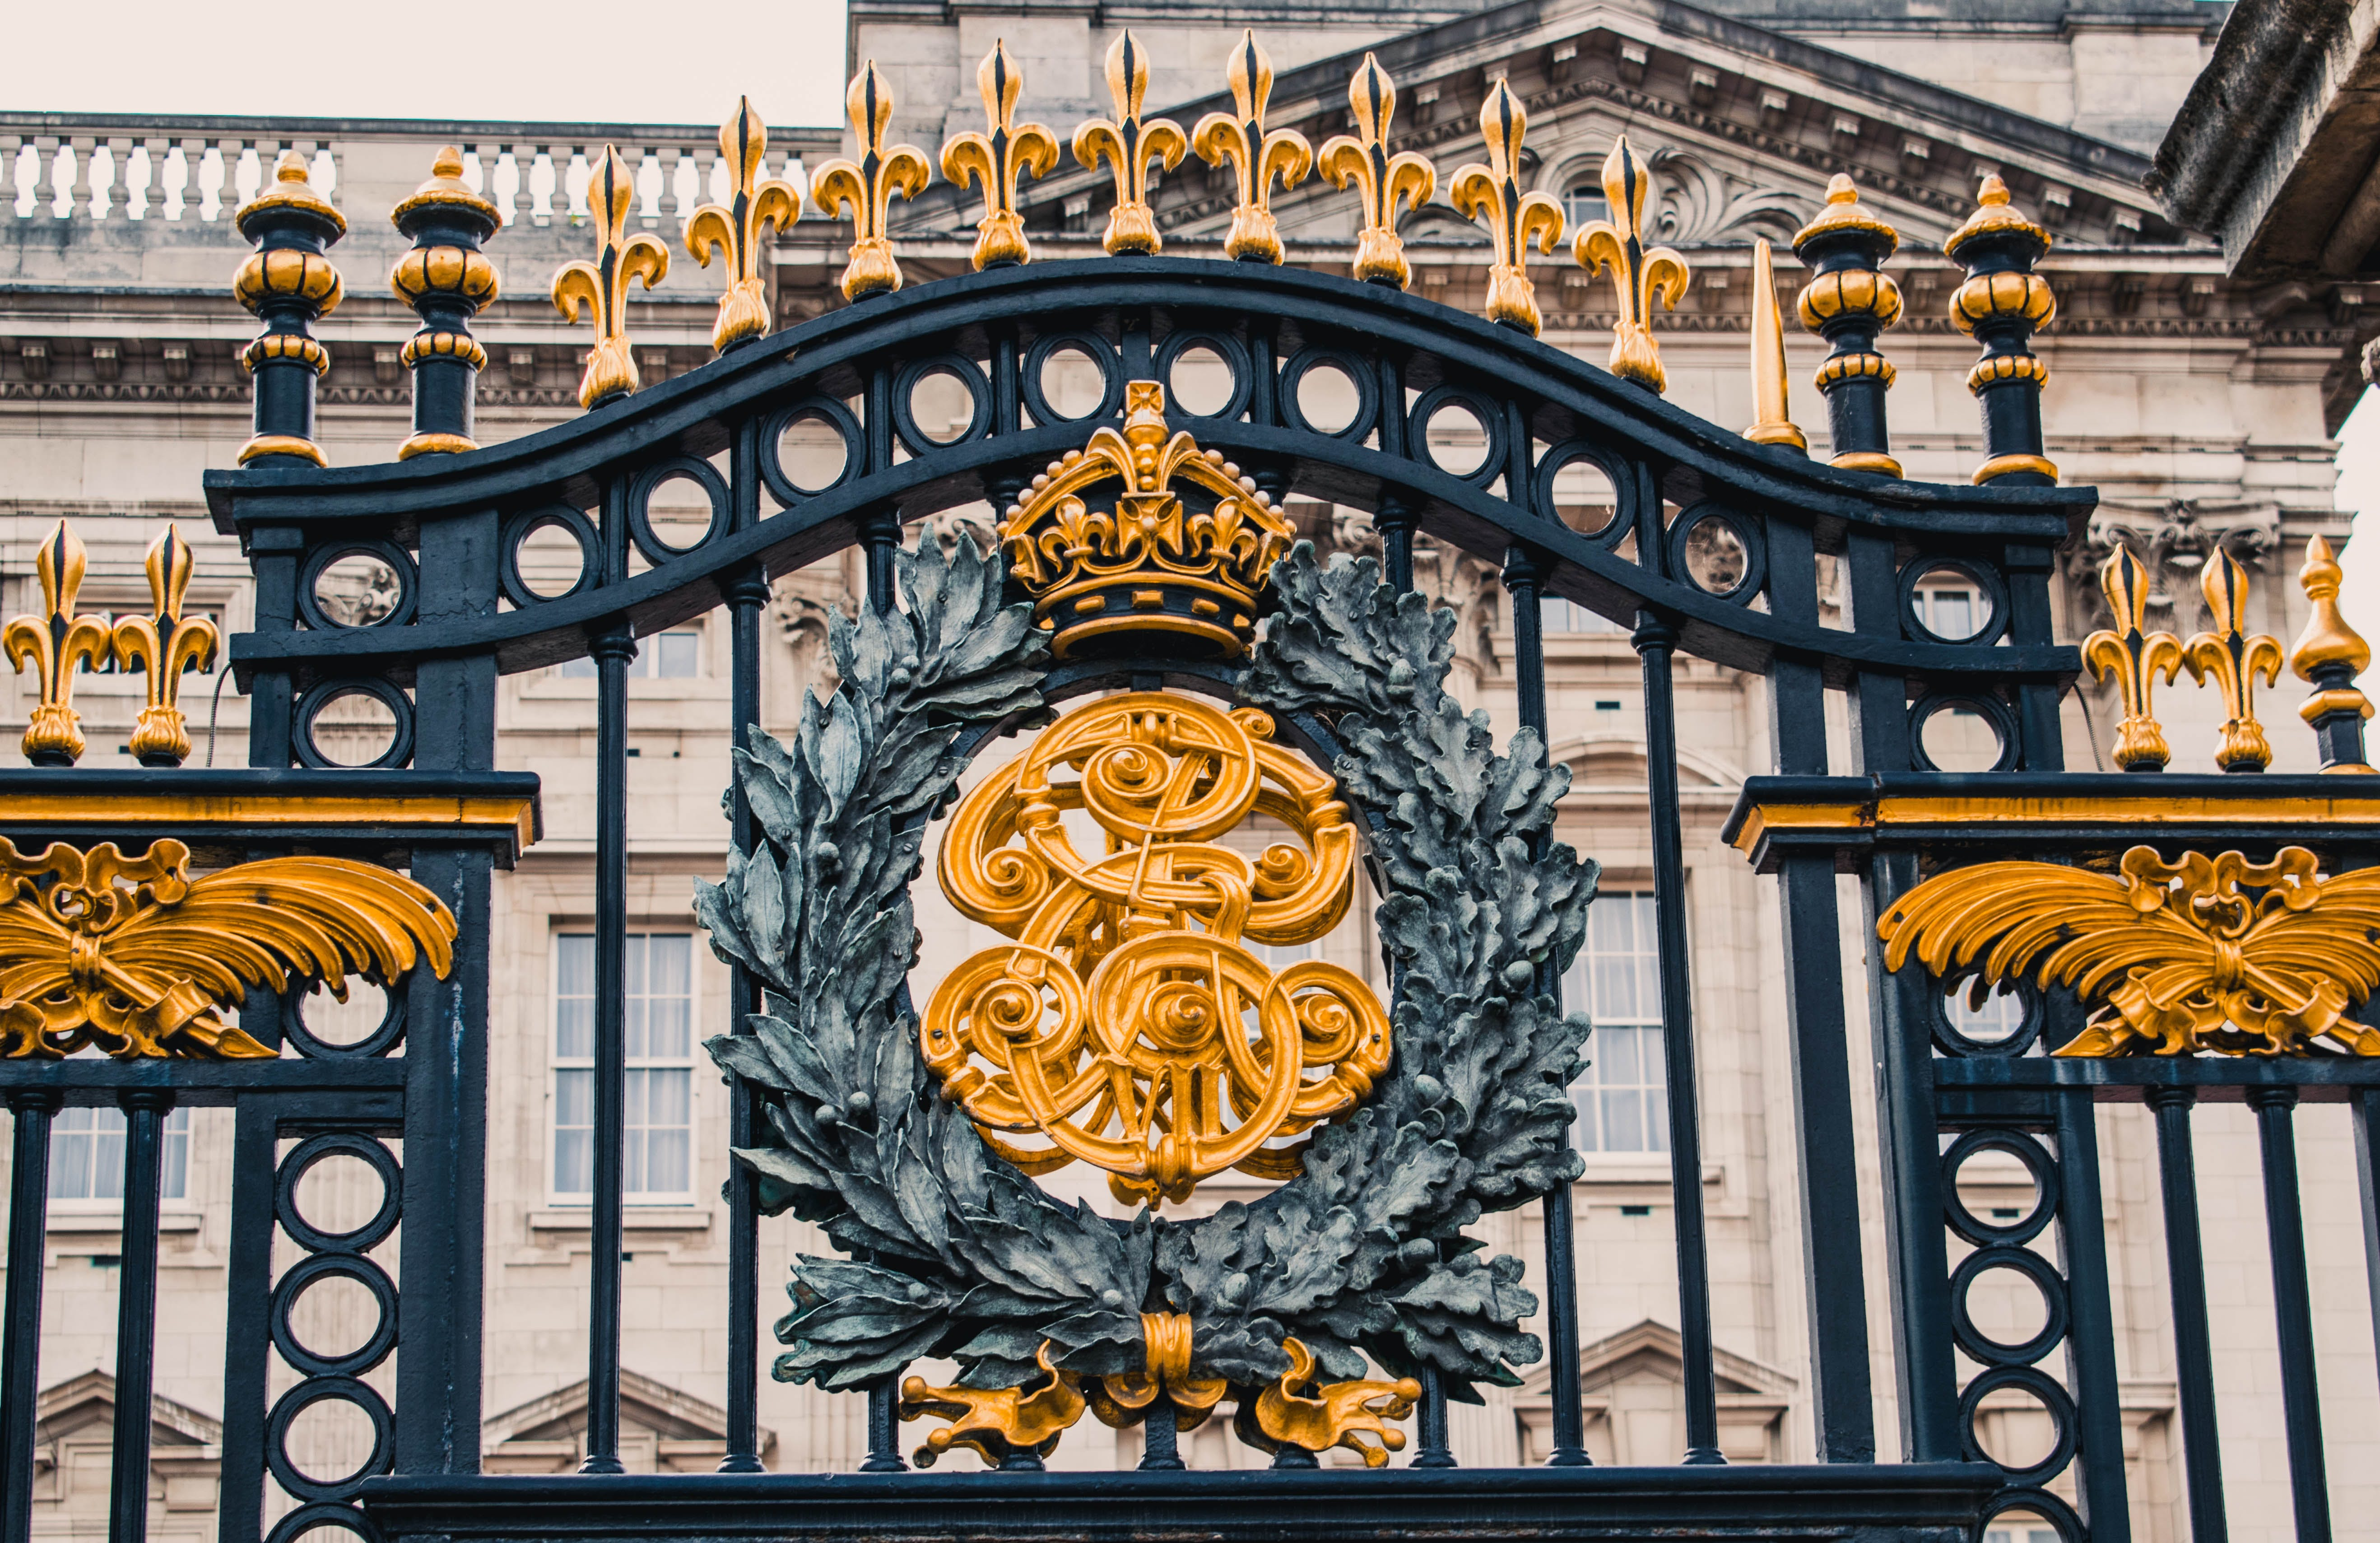 Close-Up of Gate of Buckingham Palace